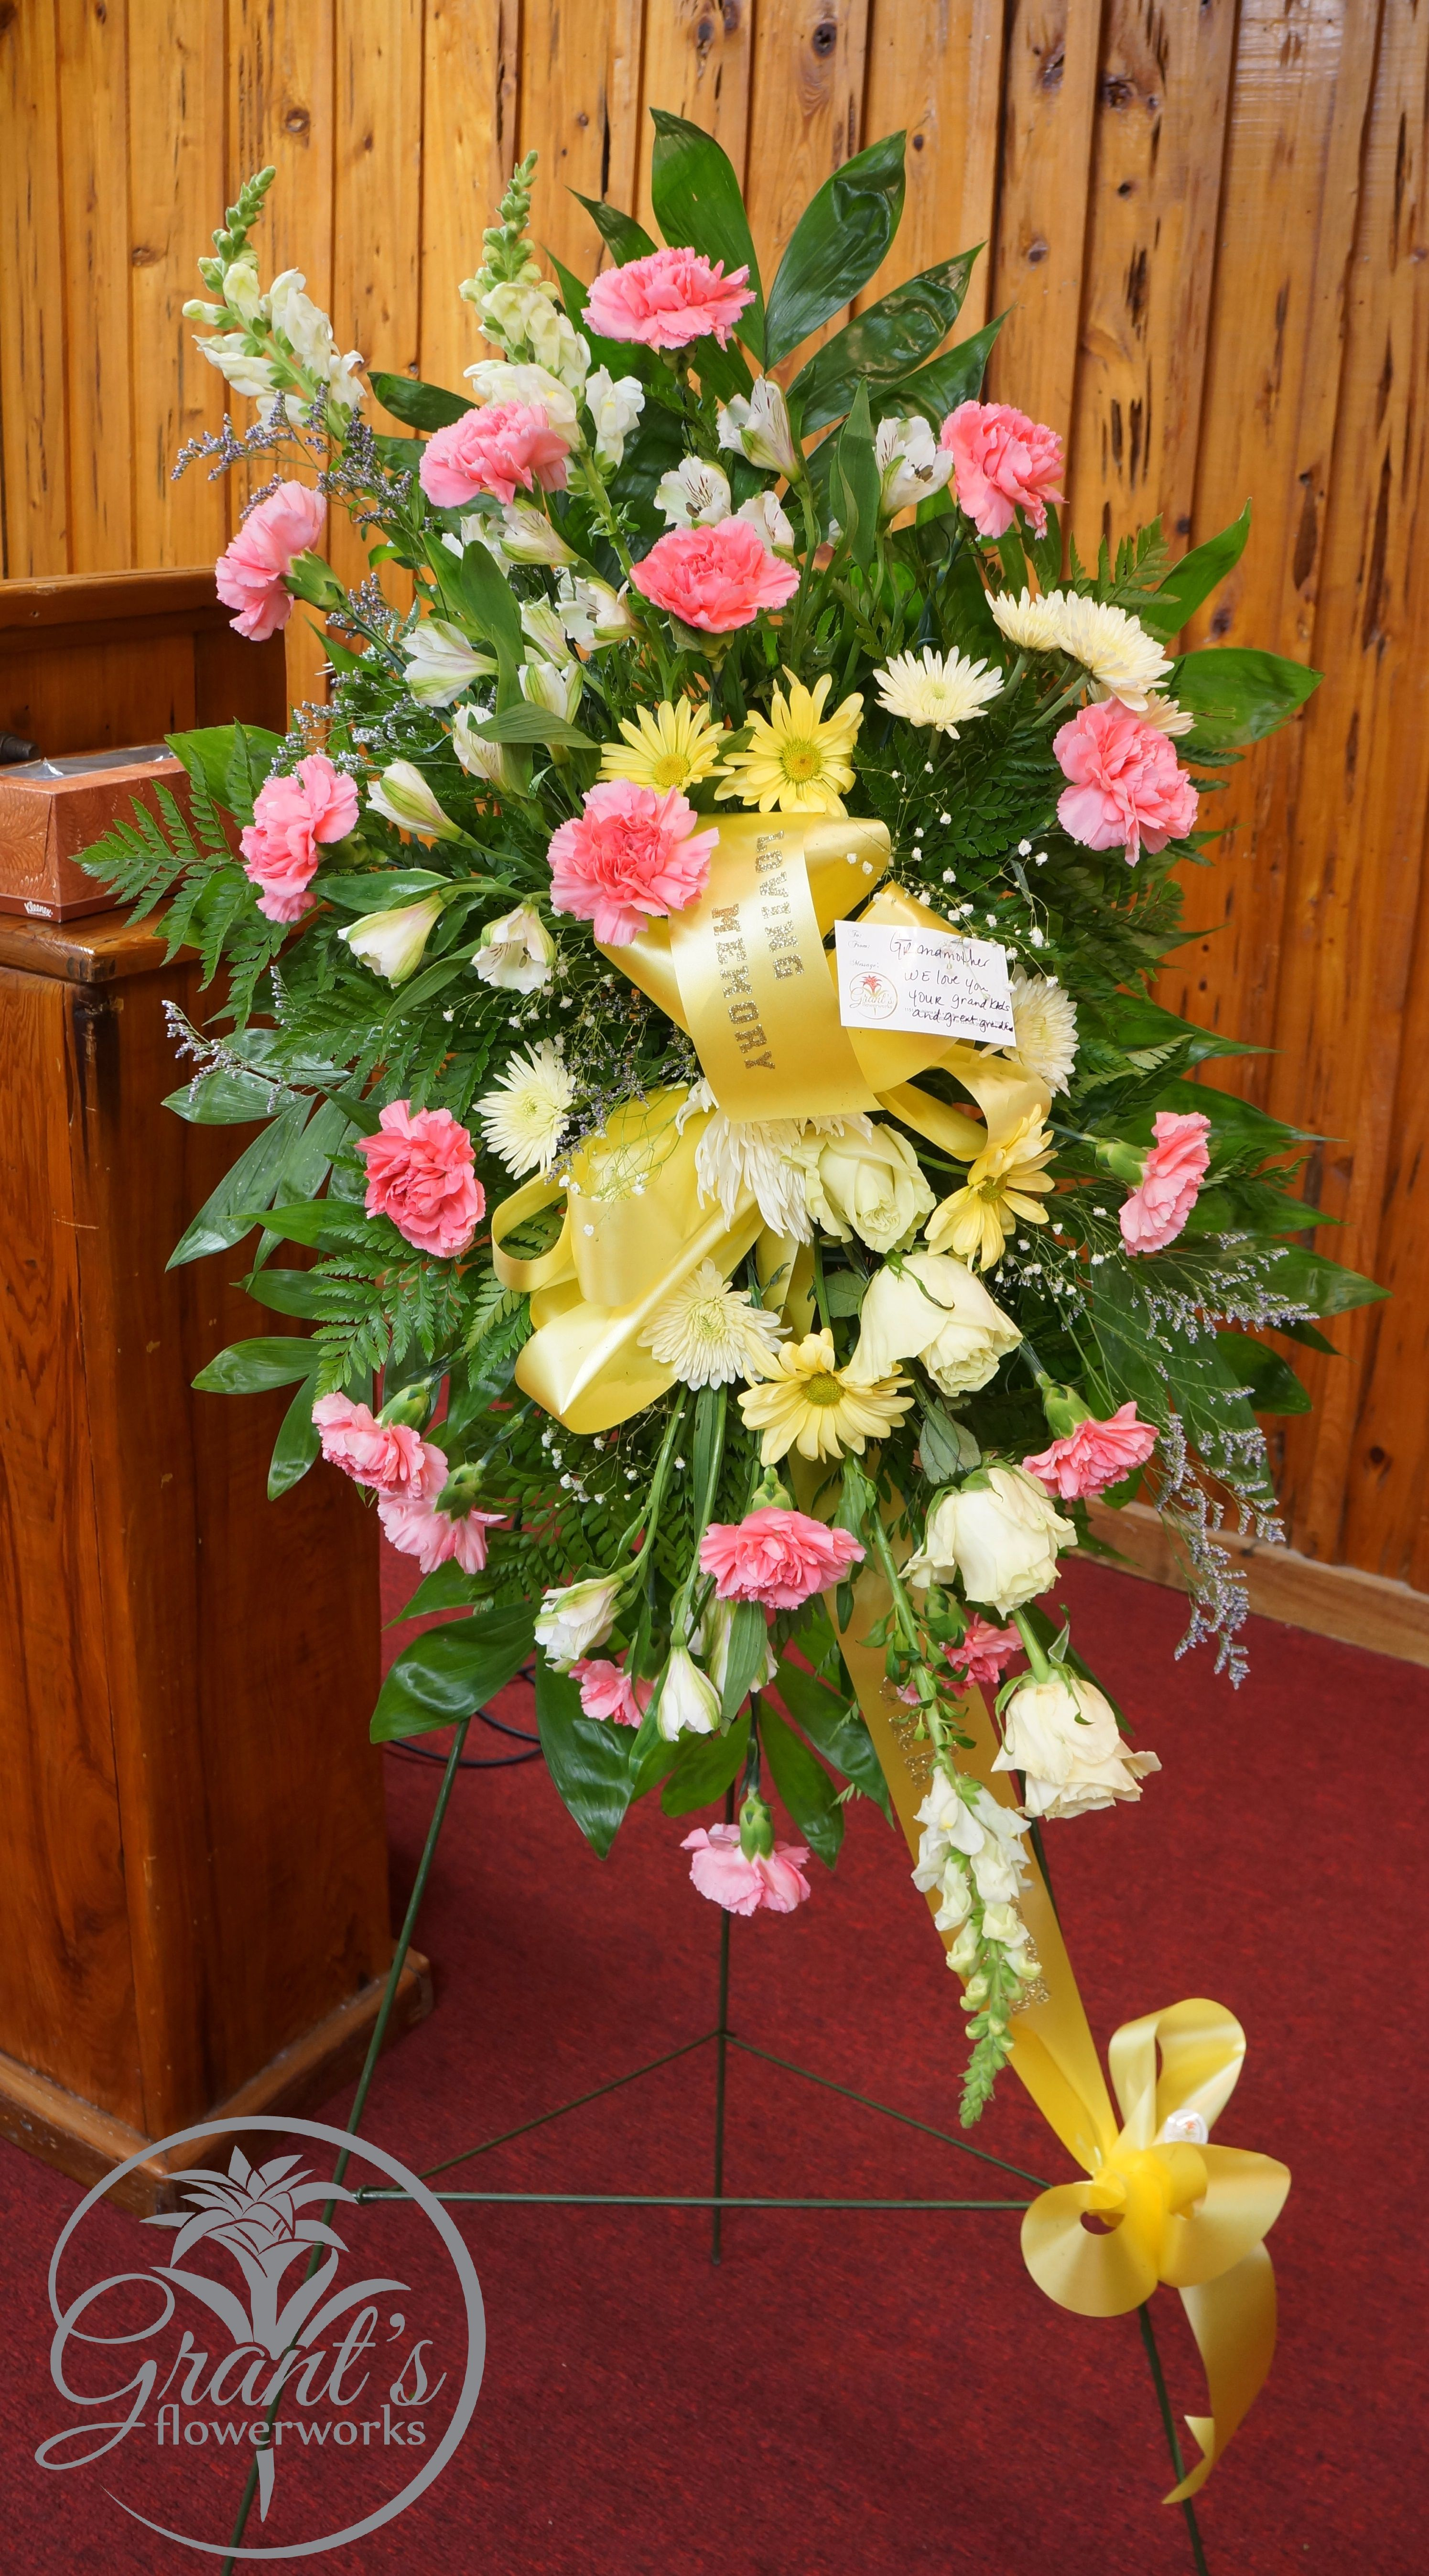 Standing Spray by Grant's Flowerworks Sympathy floral